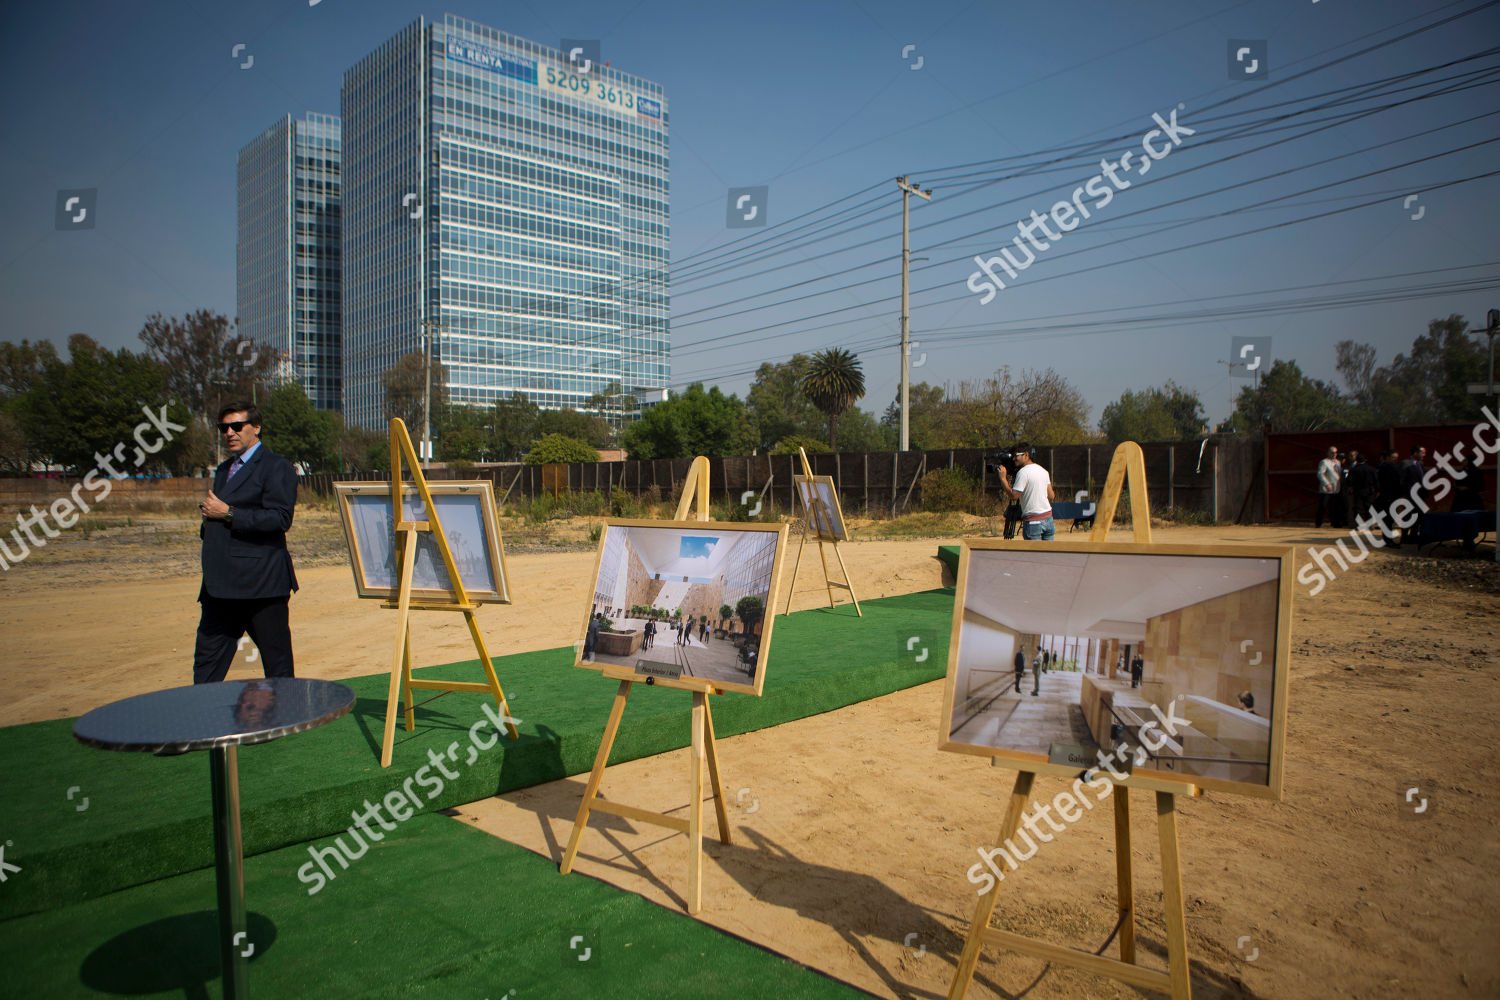 man walks past images depicting plans nearly Editorial Stock